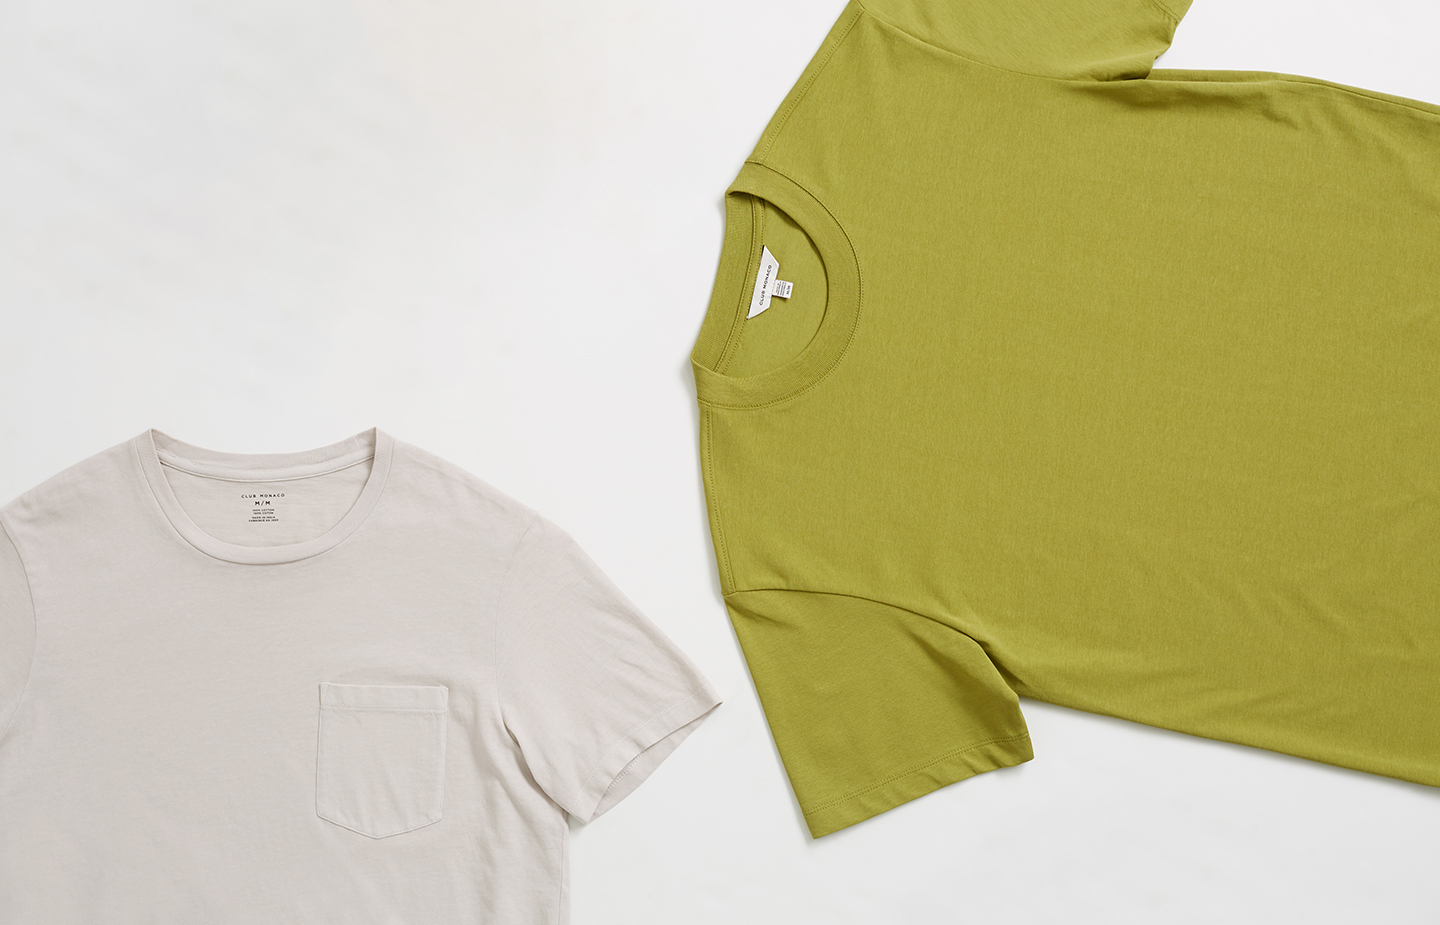 Shop the Williams and Relaxed tees.